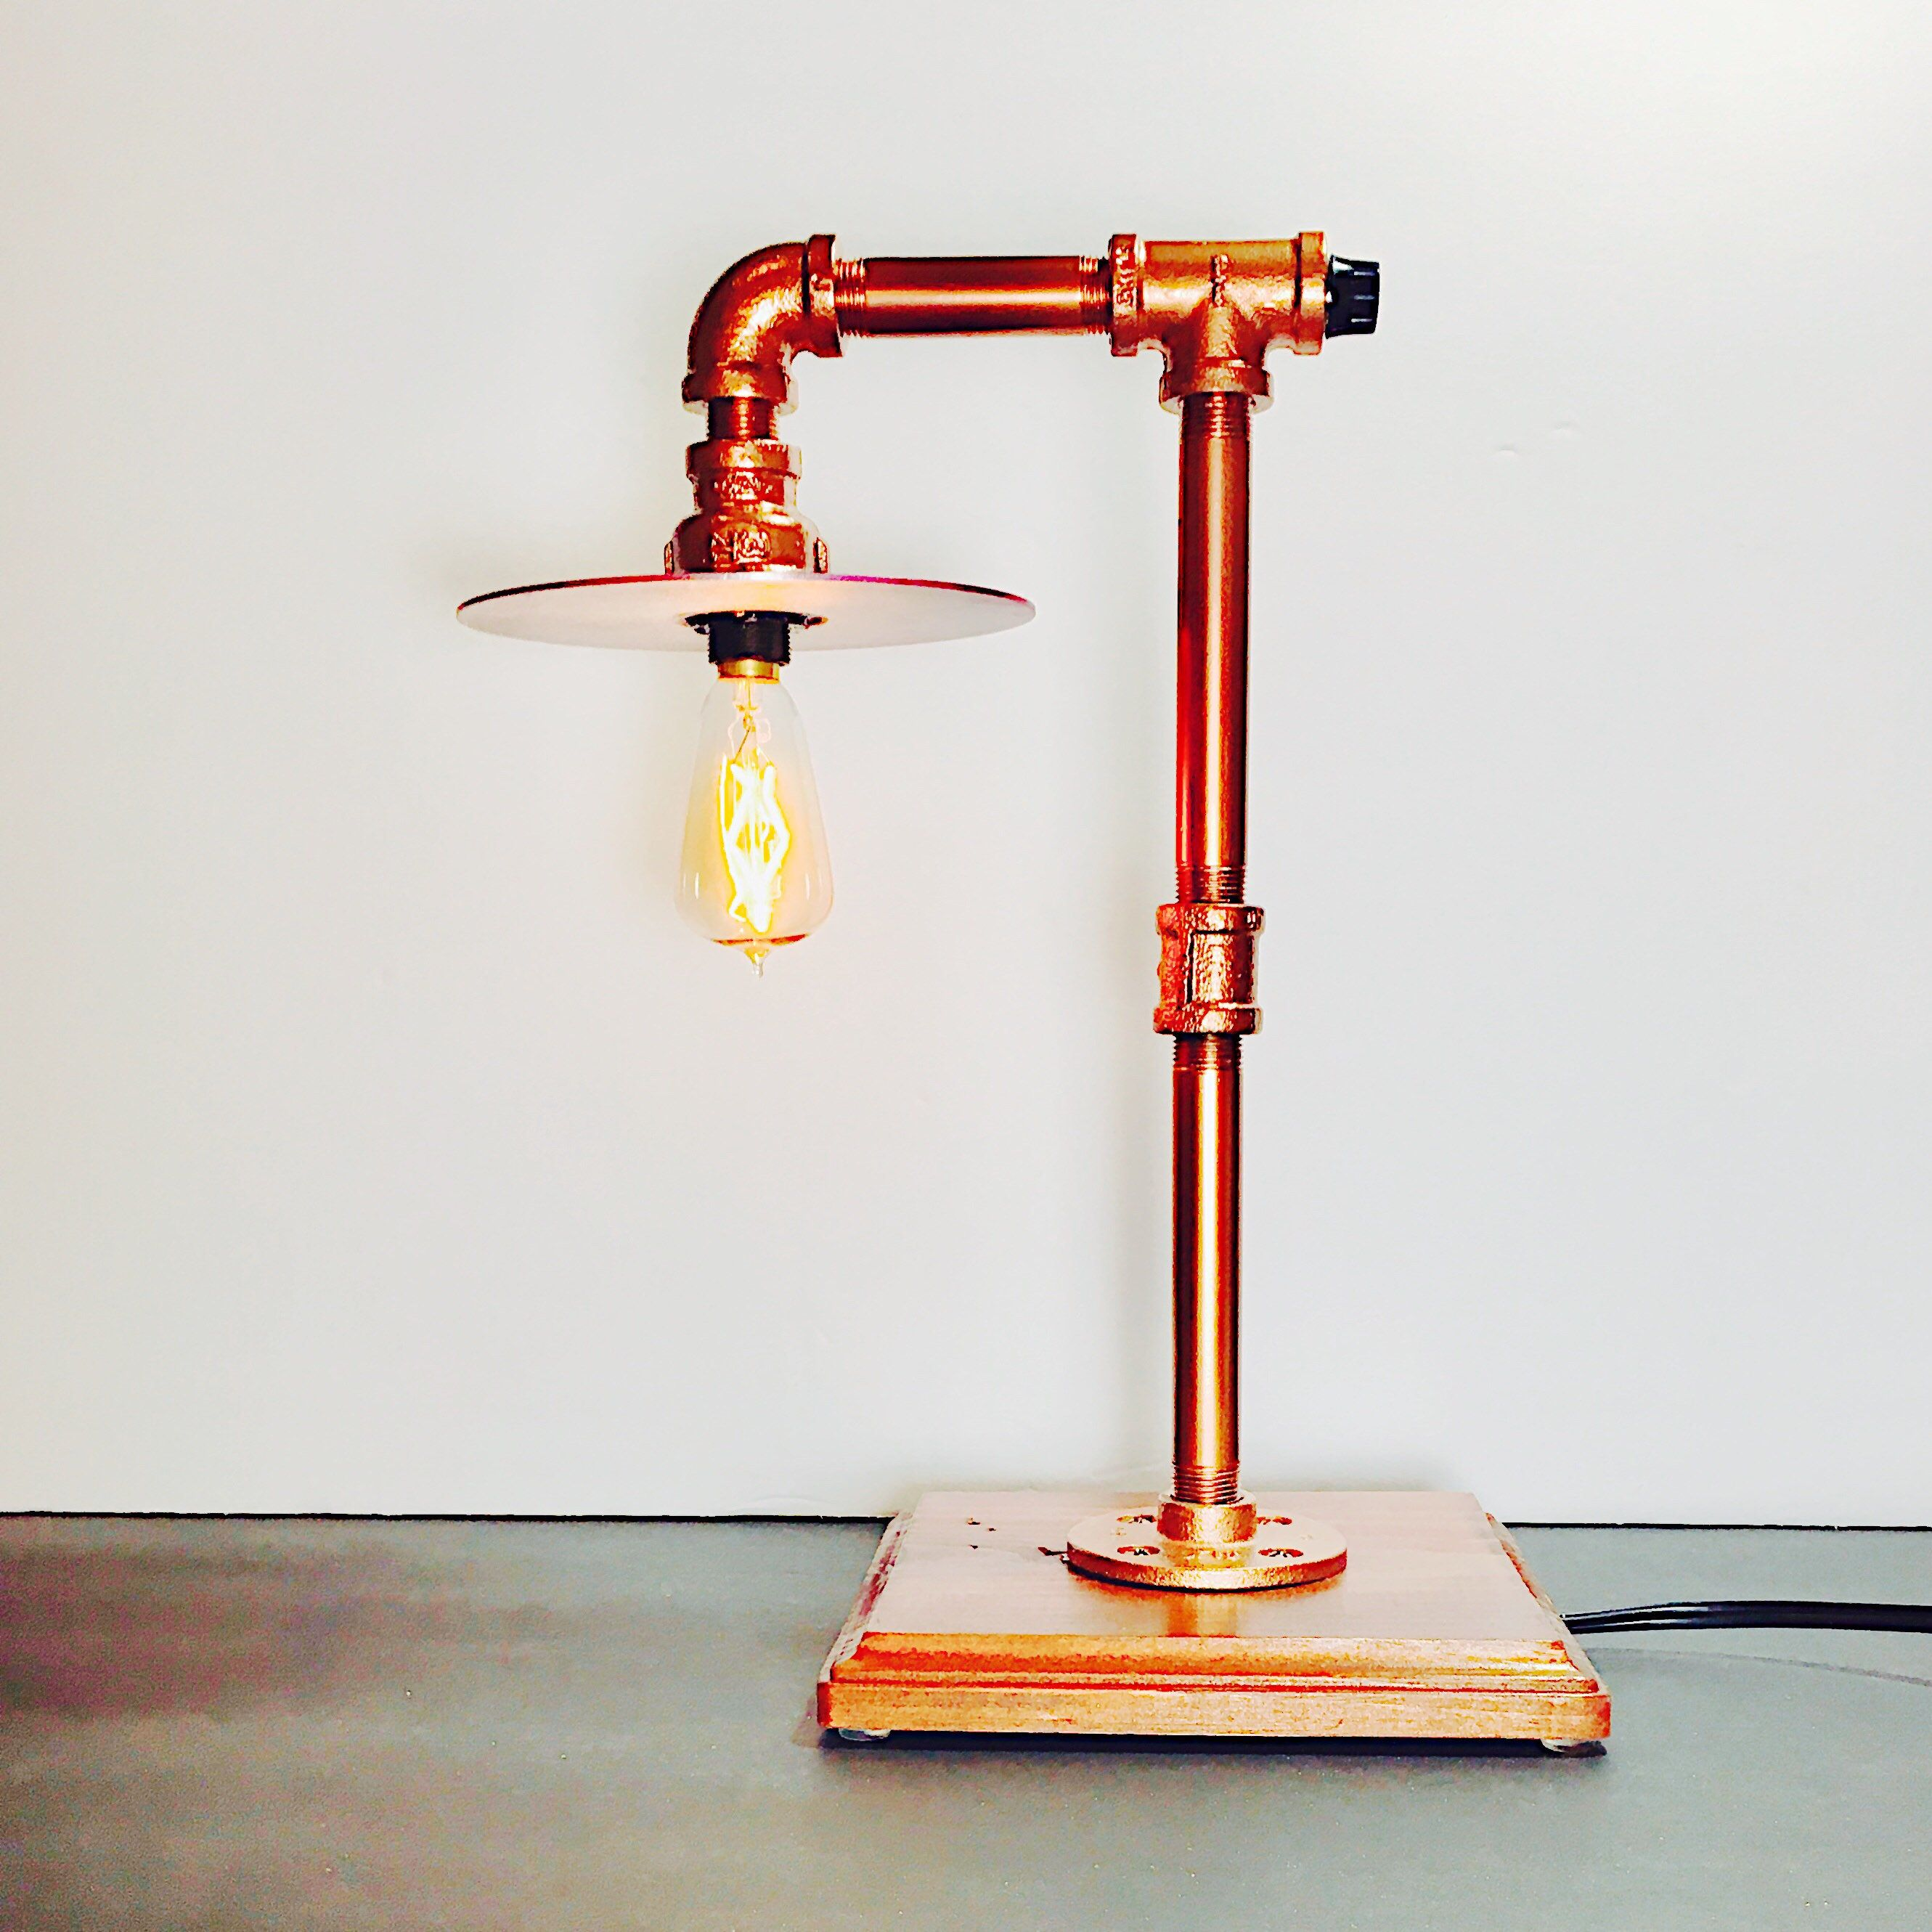 pictures lovely of handmade march lamps industrial modern etsy lamp copper photos com metal clubanfi amazing table minimalist floor